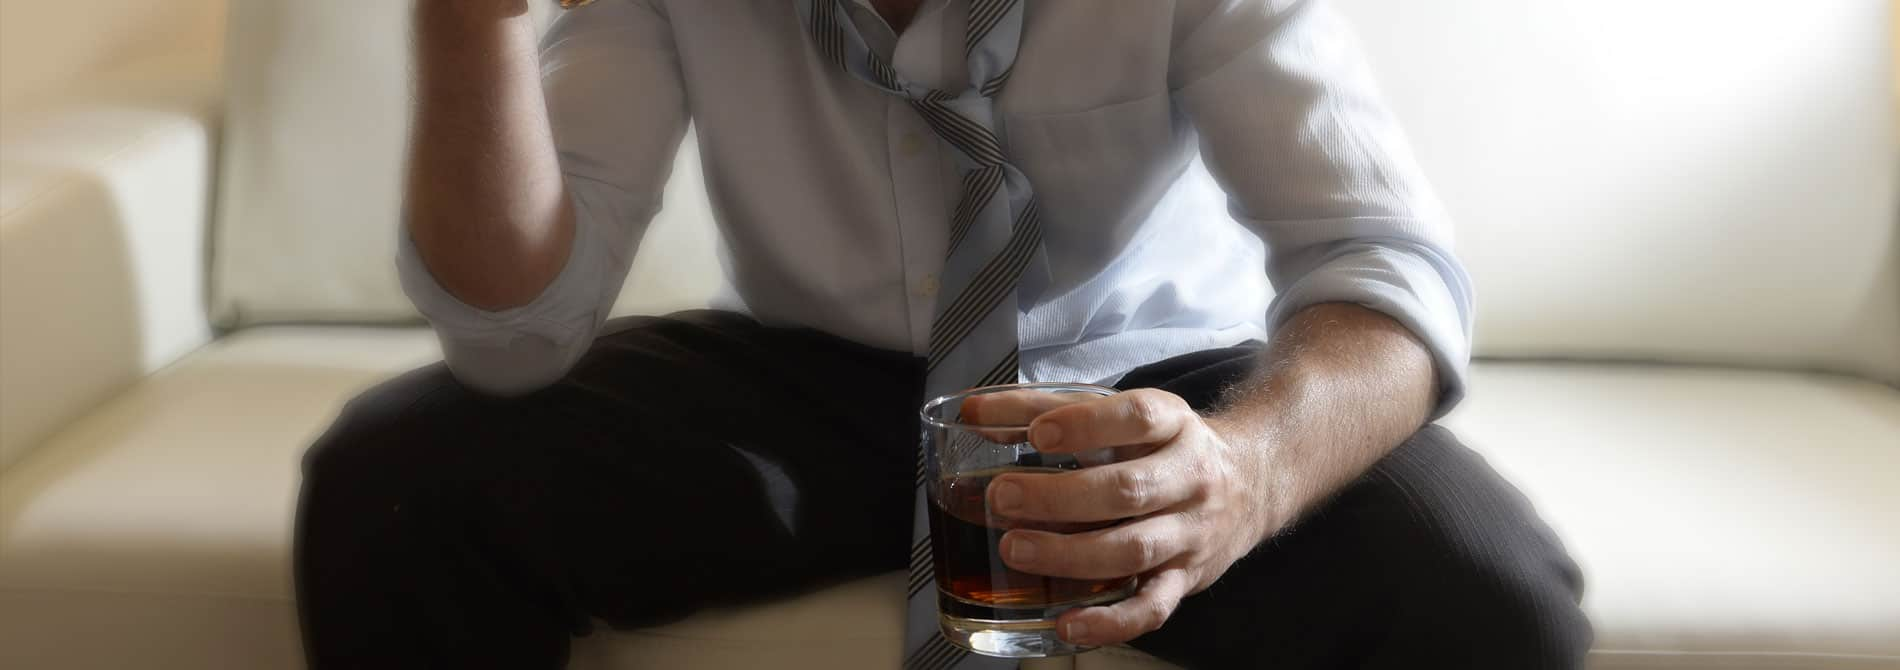 Spotting Symptoms of a Loved Ones Alcoholism